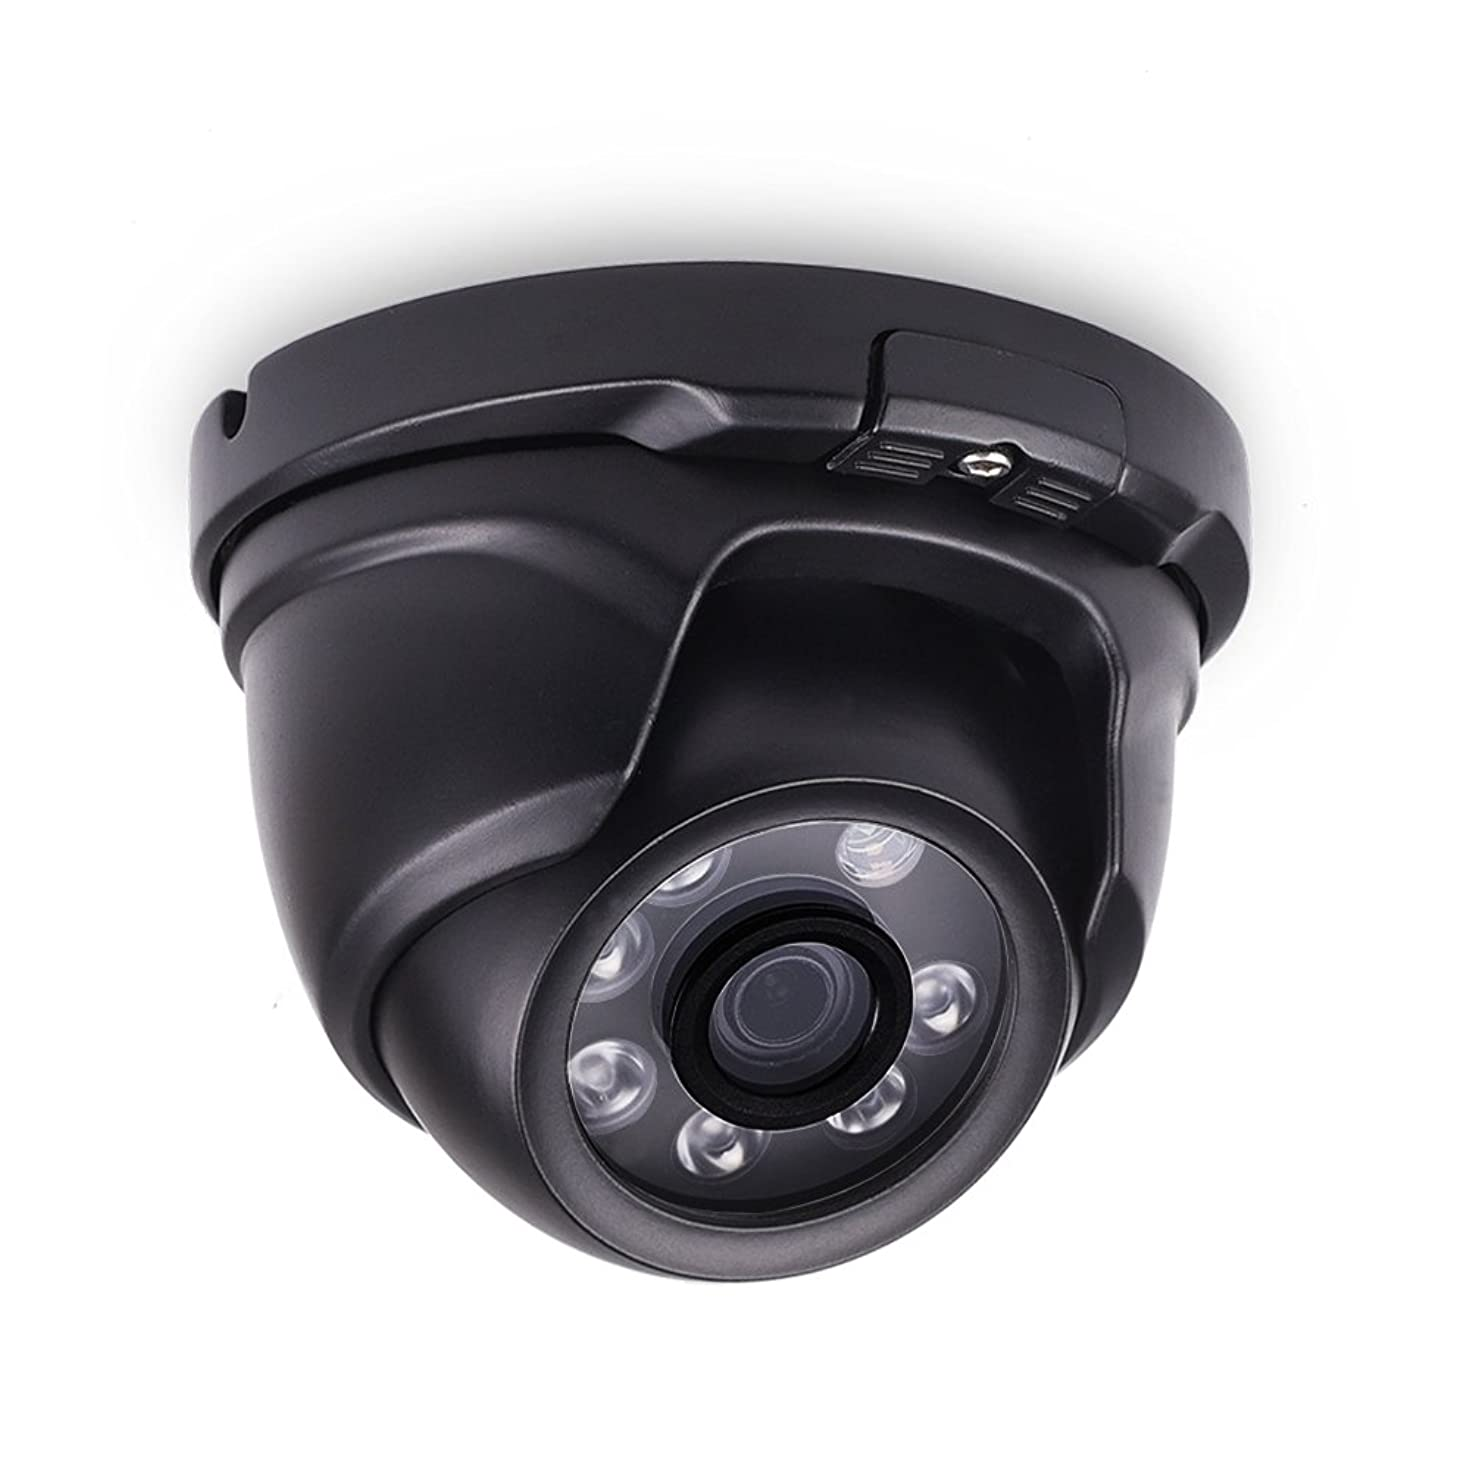 LONNKY Home Security Camera,1080P 2.0MP Full HD TVI Analog Dome Camera and IP66 Waterproof Outdoor CCTV Home Surveillance Security System with 80ft Night Vision, 3.6mm Lens Wide Angle